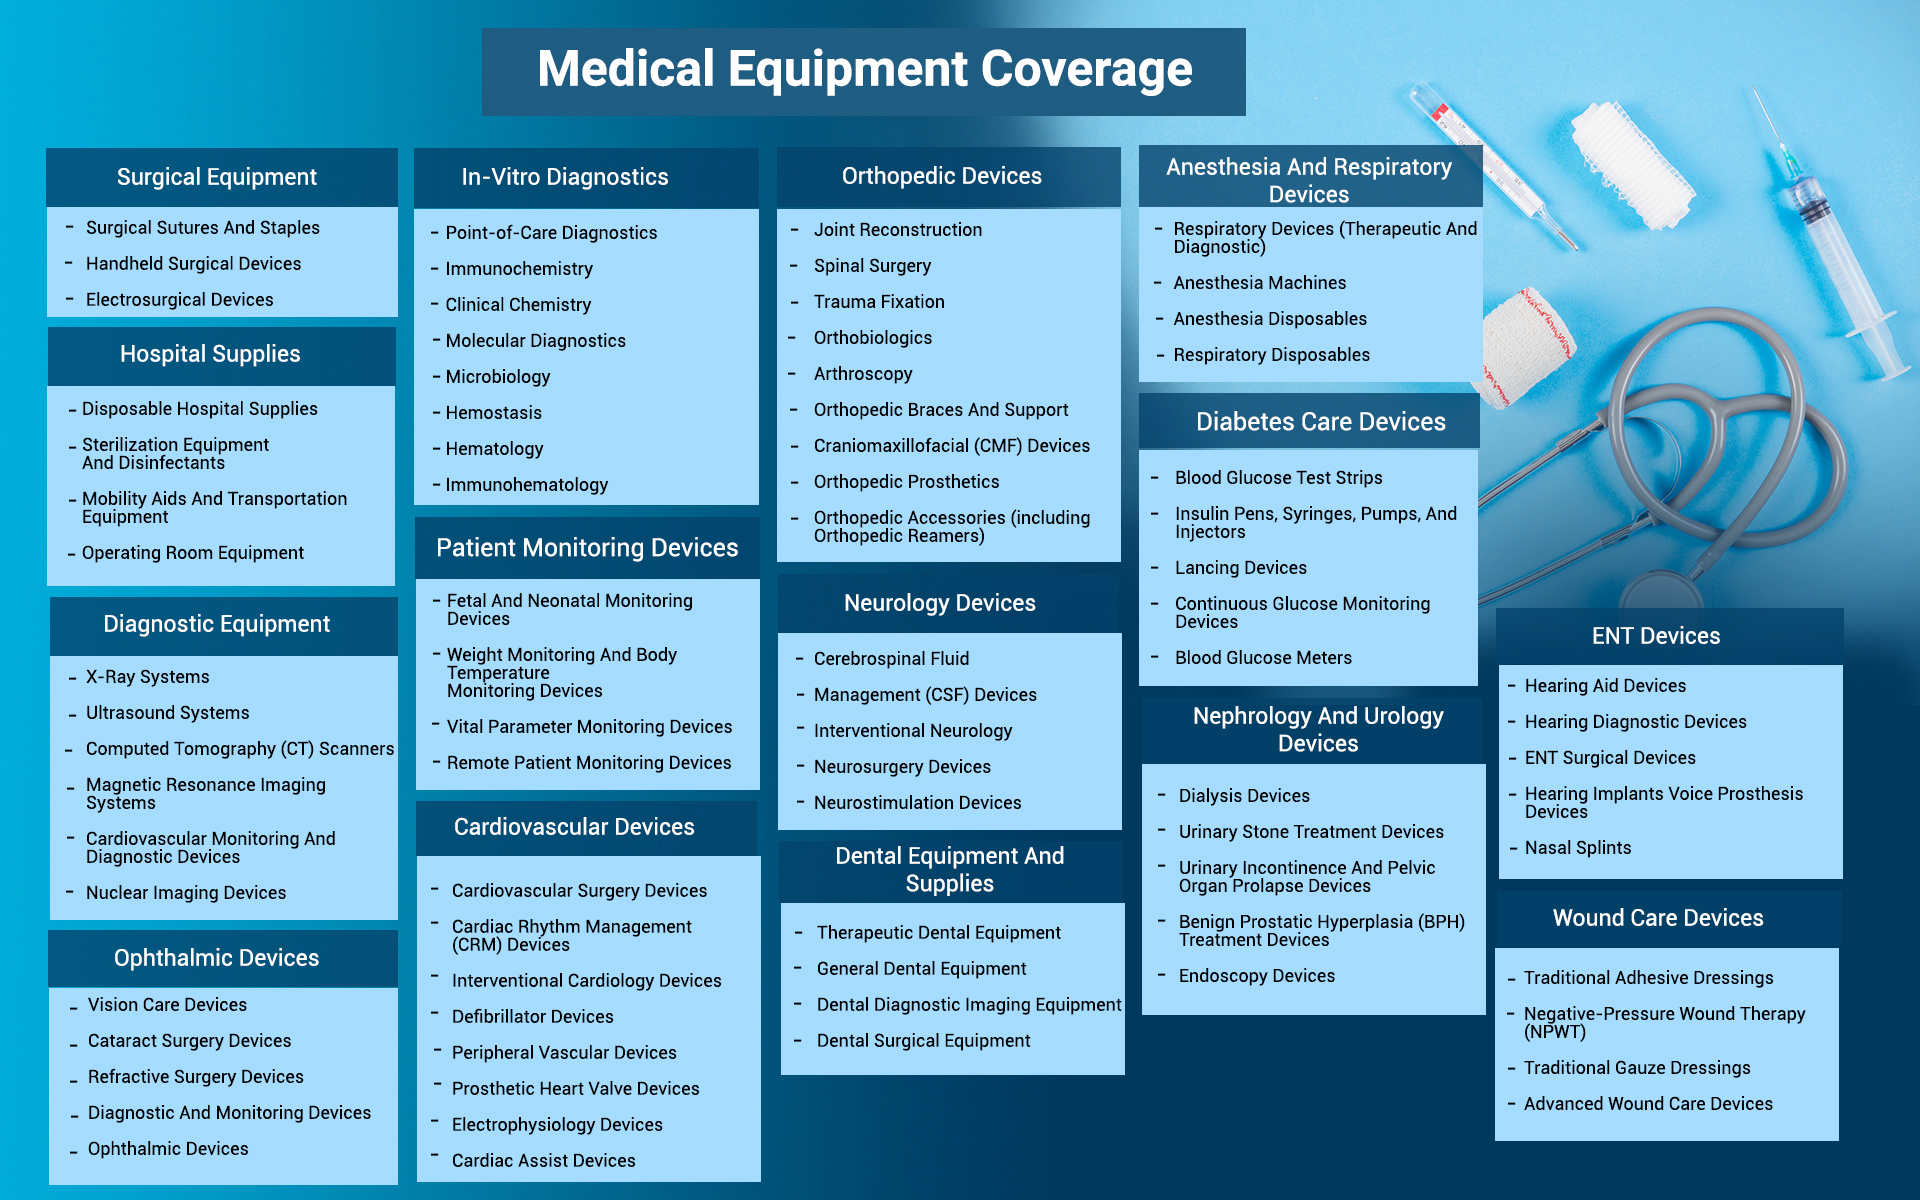 Medical Equipment Coverage